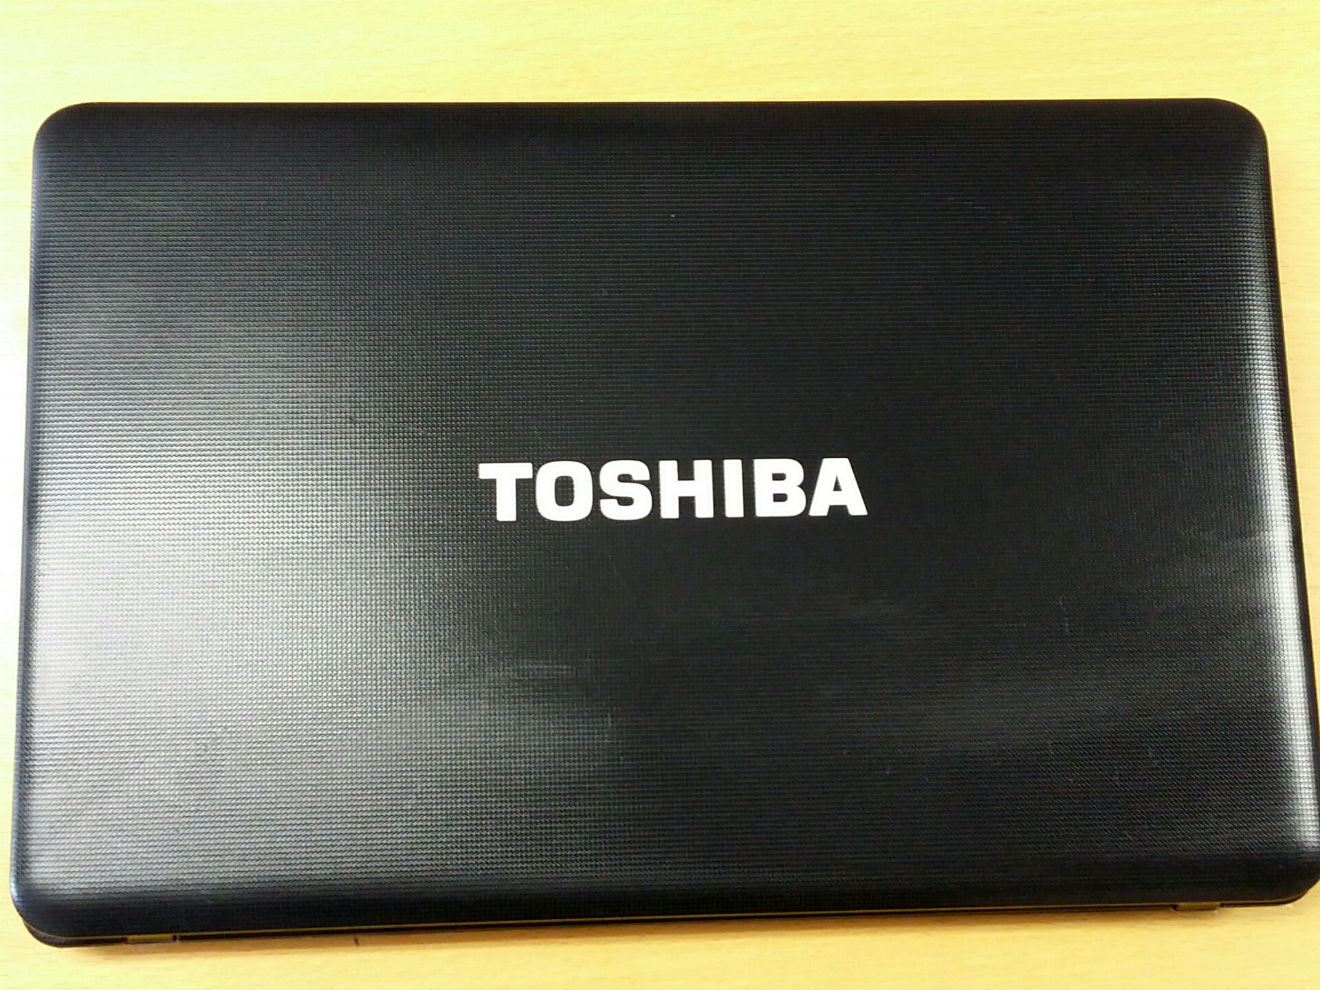 Toshiba Satellite C650D – 3113